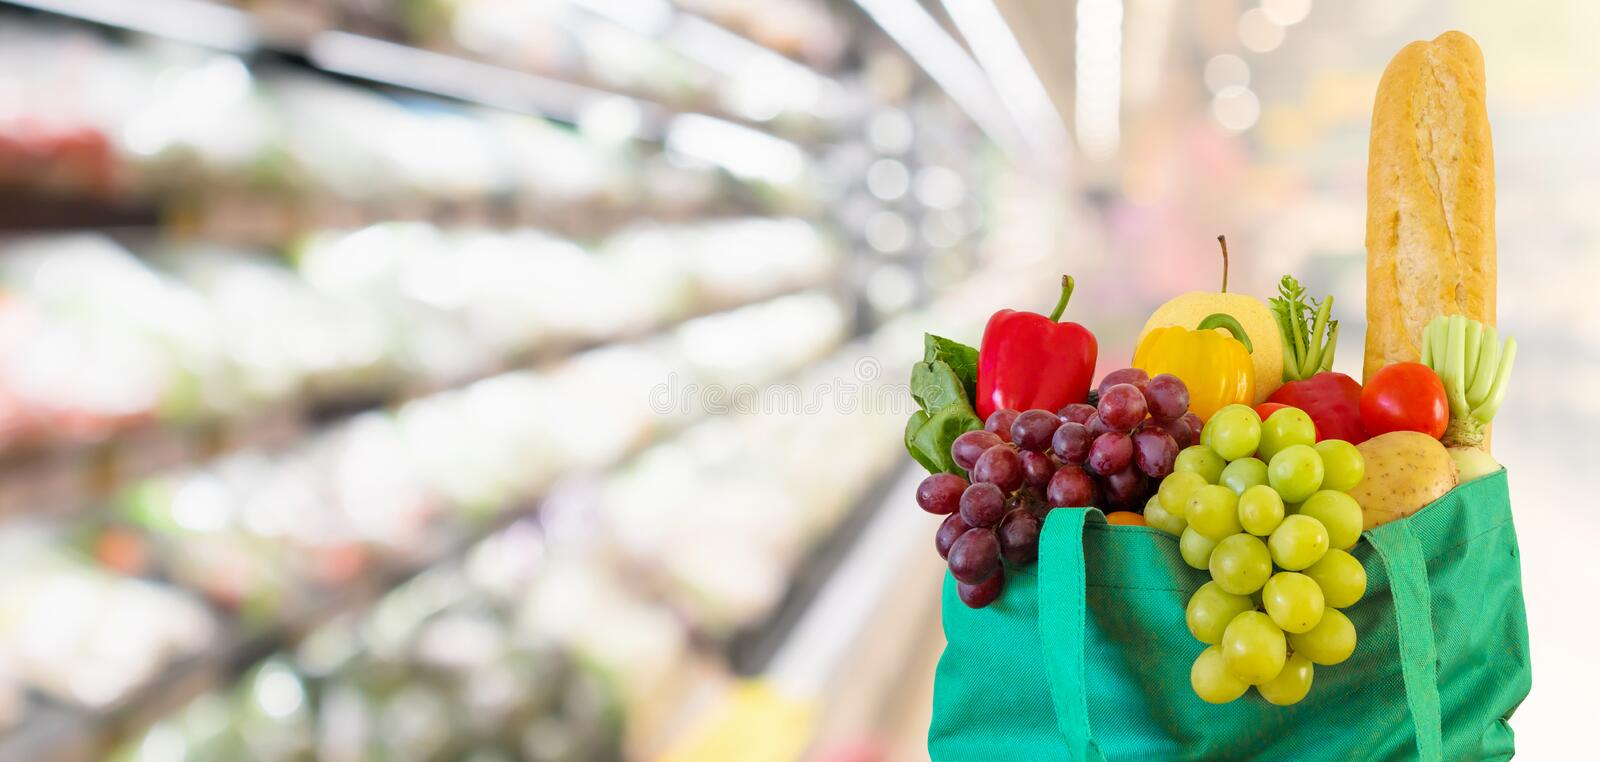 Fresh fruits and vegetables in shopping bag with supermarket grocery store blurred defocused background royalty free stock photo